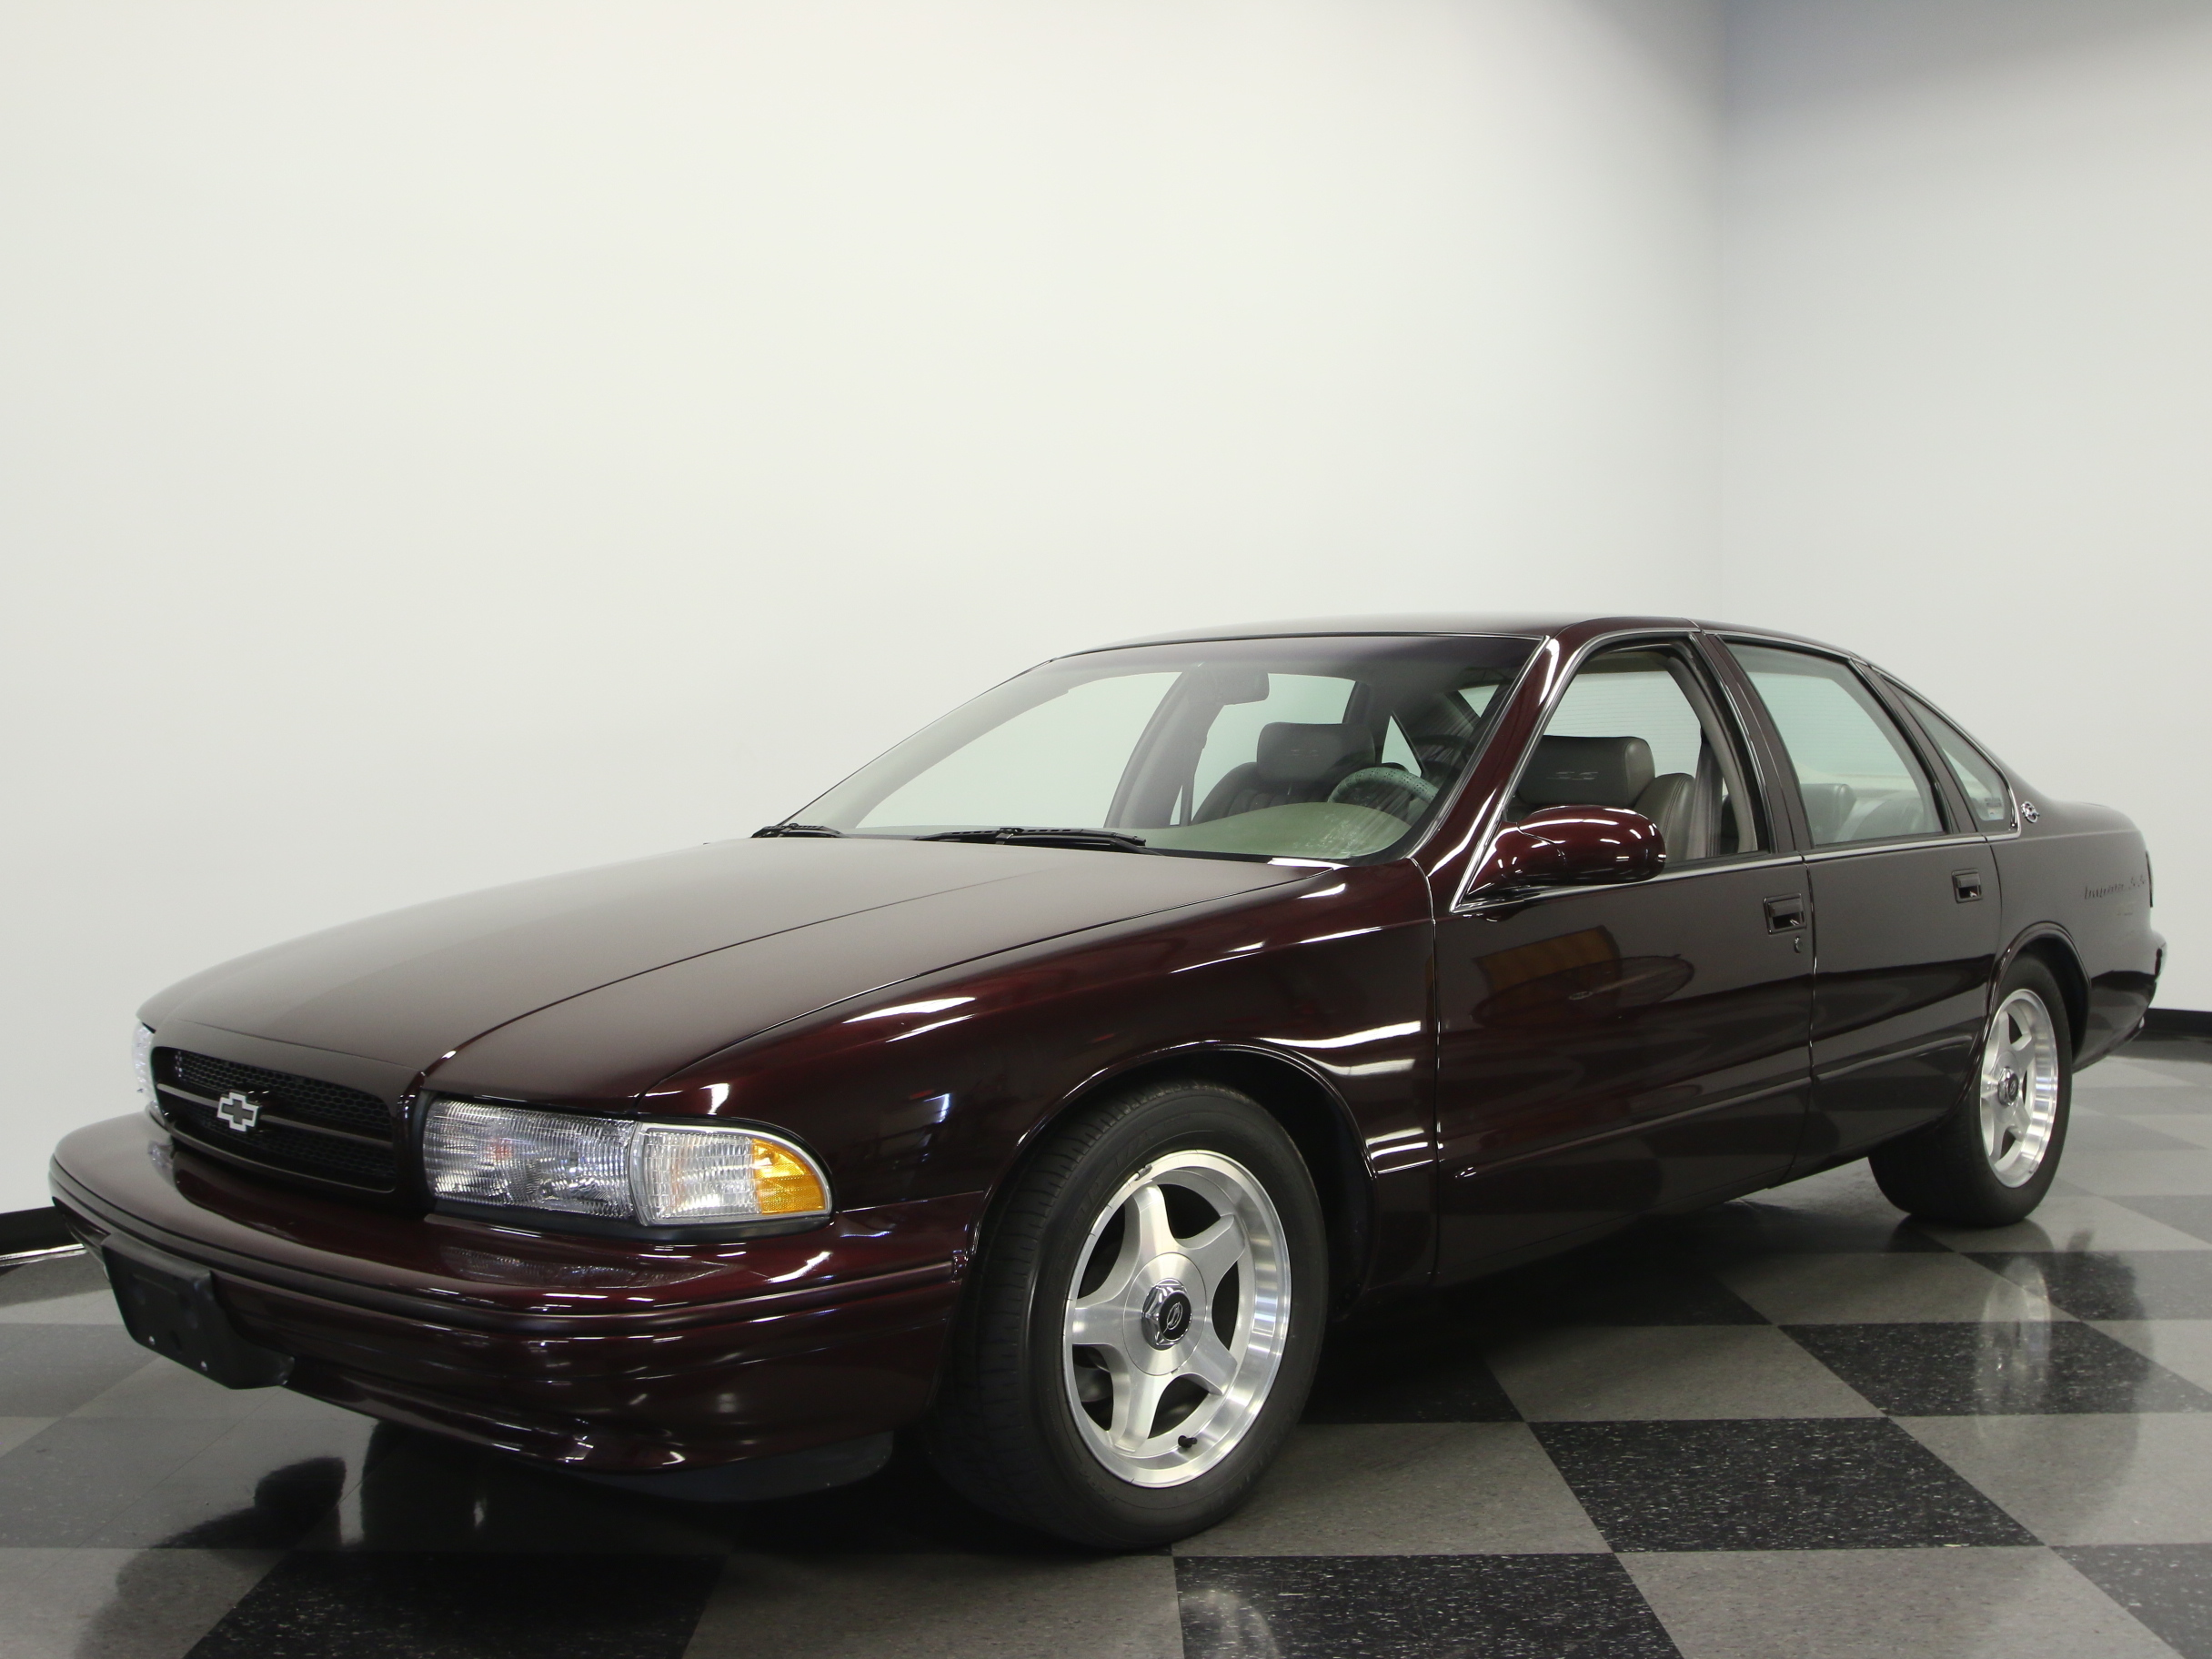 1996 impala ss specs ehow ehow how to videos html autos post. Black Bedroom Furniture Sets. Home Design Ideas